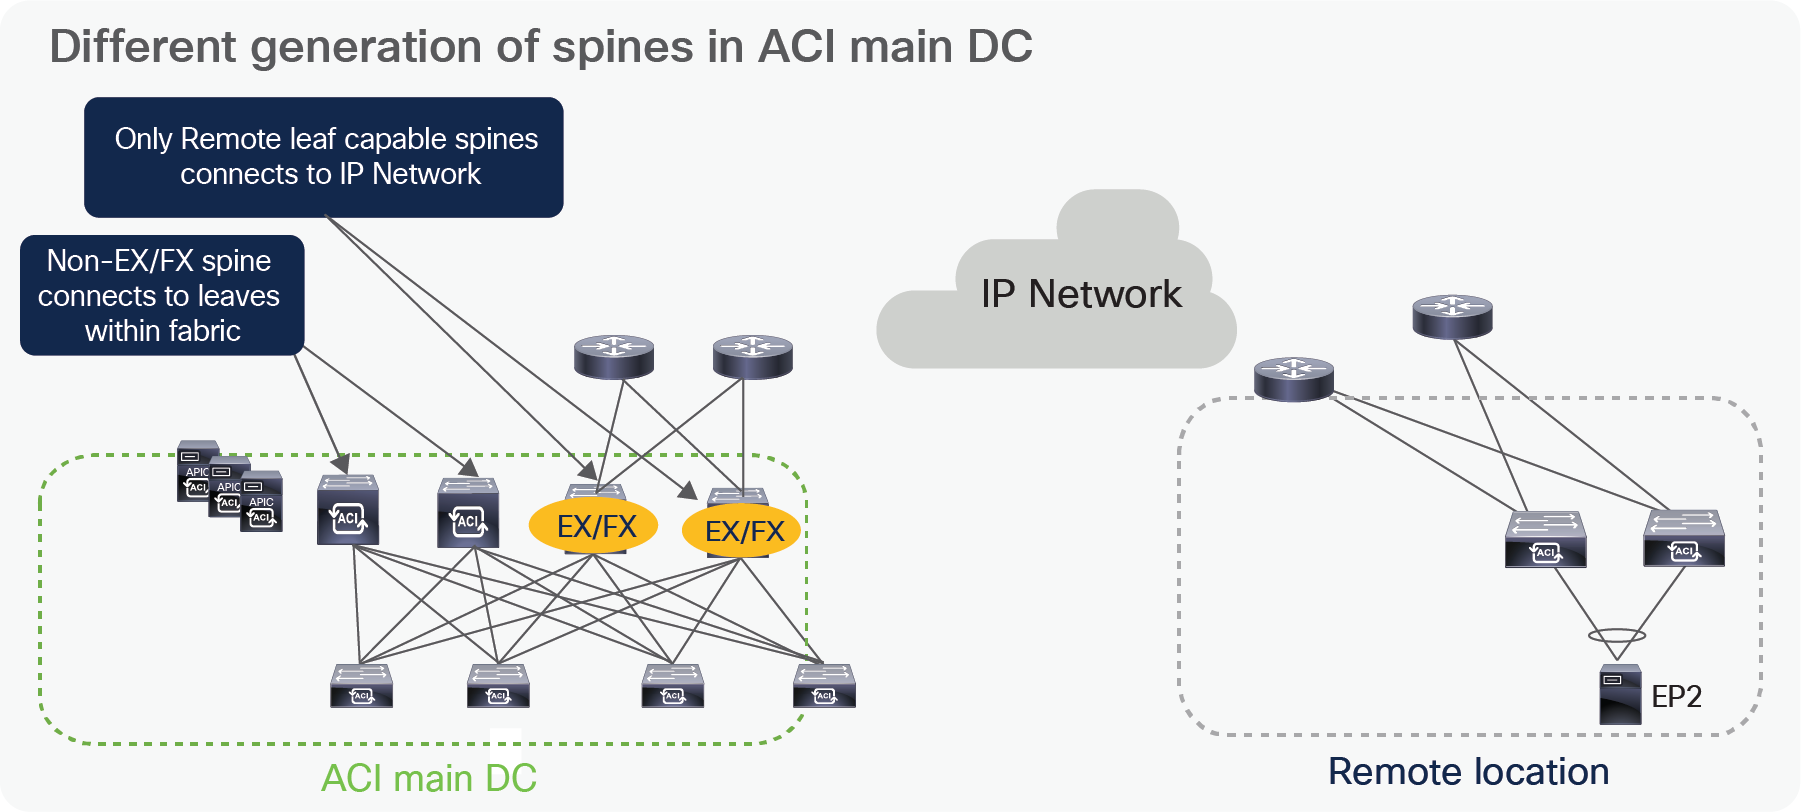 Title: Different generation of spines in ACI main DC